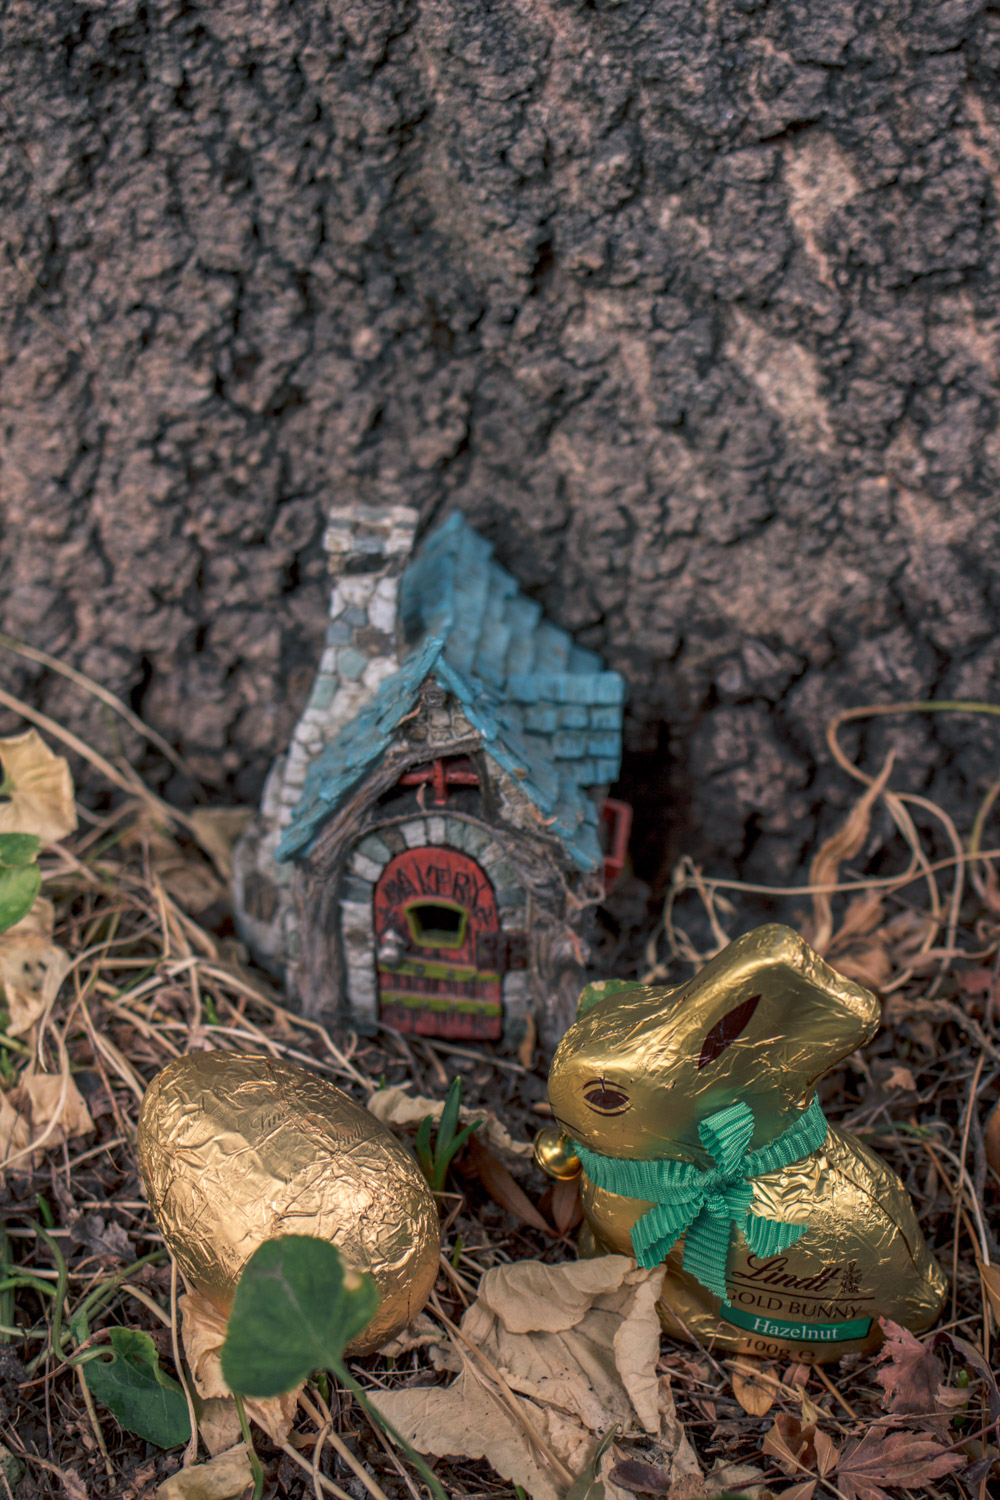 Fairy house and chocolate eggs and bilby at the Autumn Themed Easter Egg Hunt in Australia.